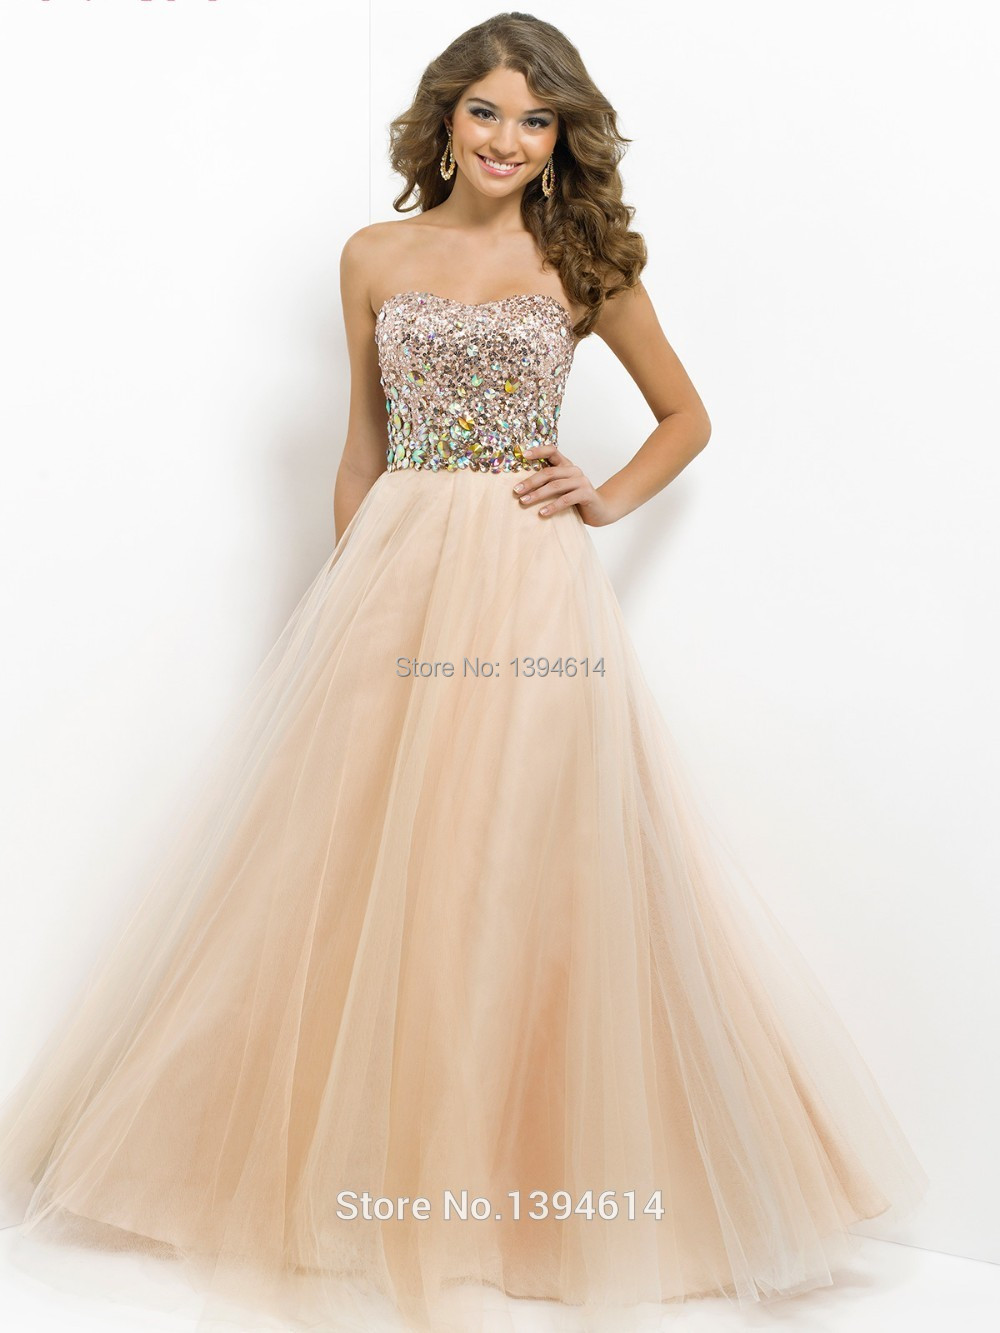 2015 beautiful crystal sequins strapless ball gown prom for Champagne ball gown wedding dresses